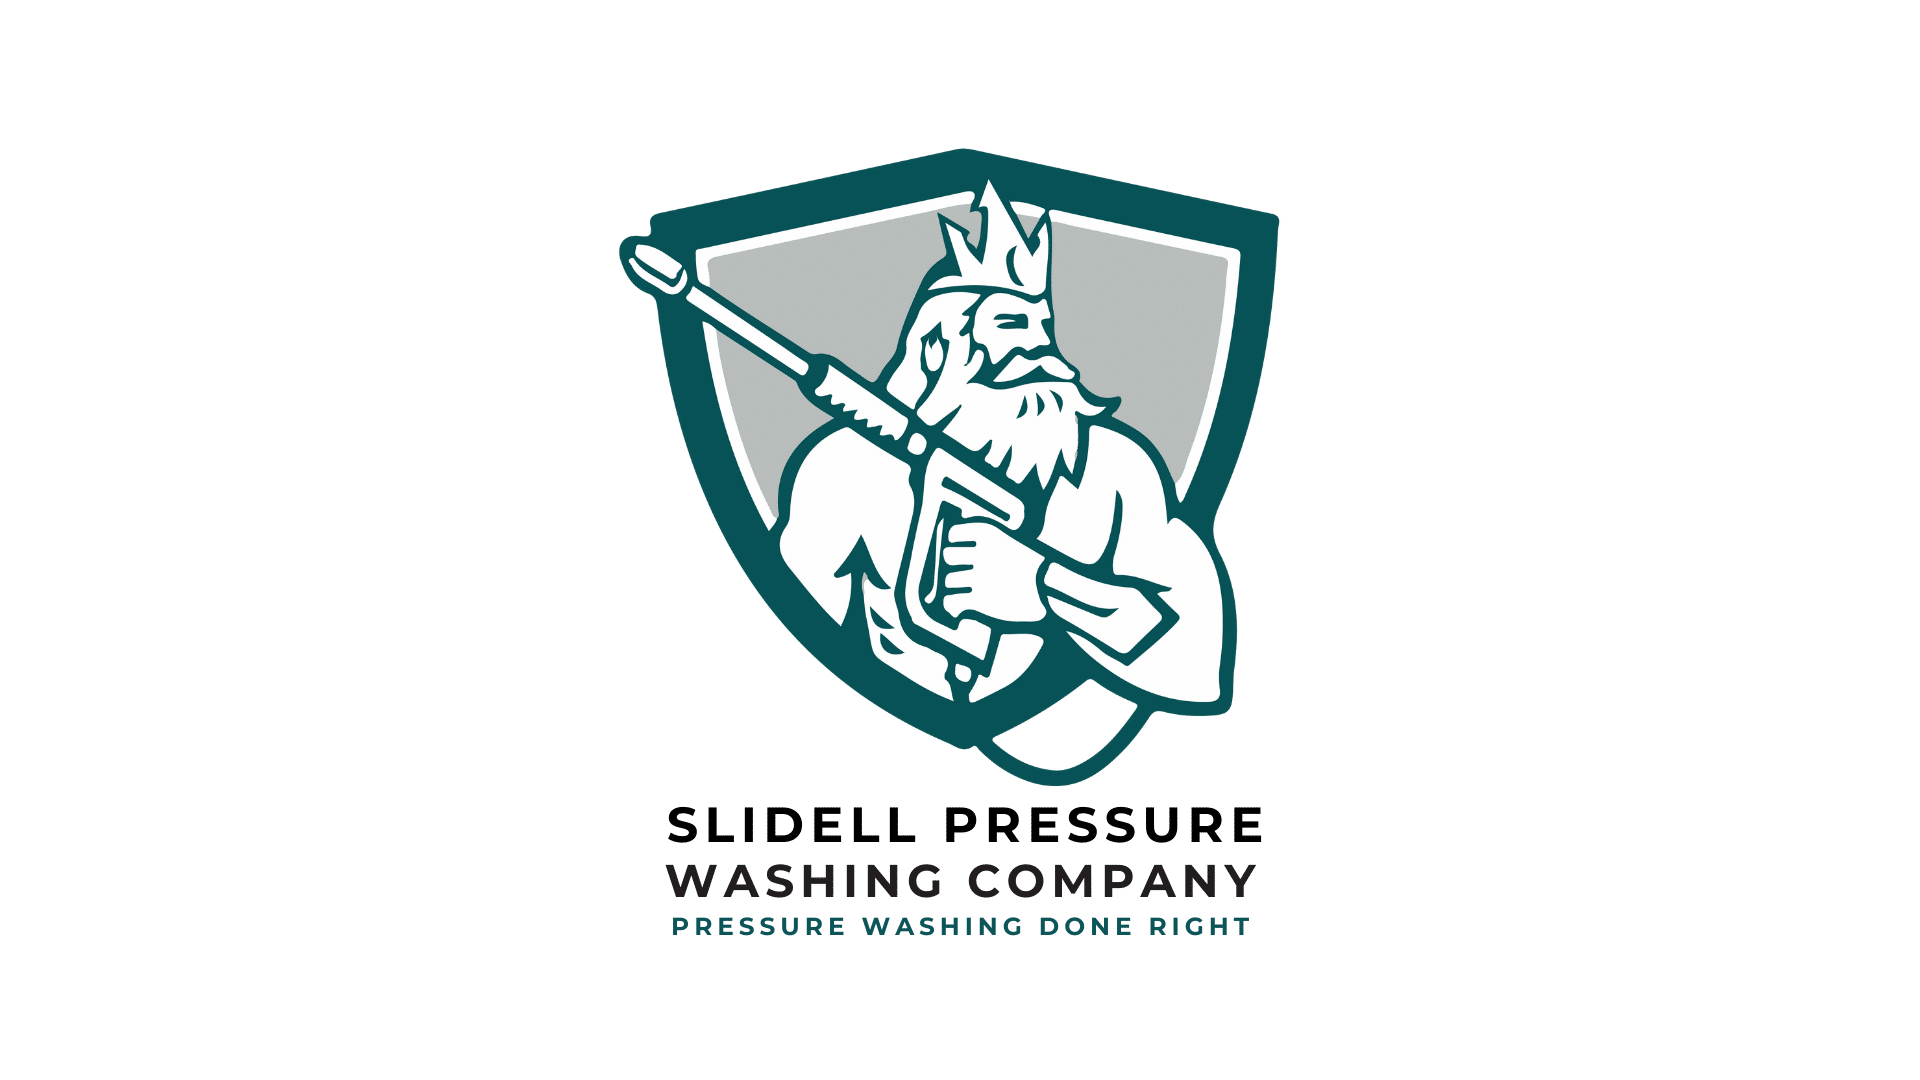 Slidell Pressure Washing Company